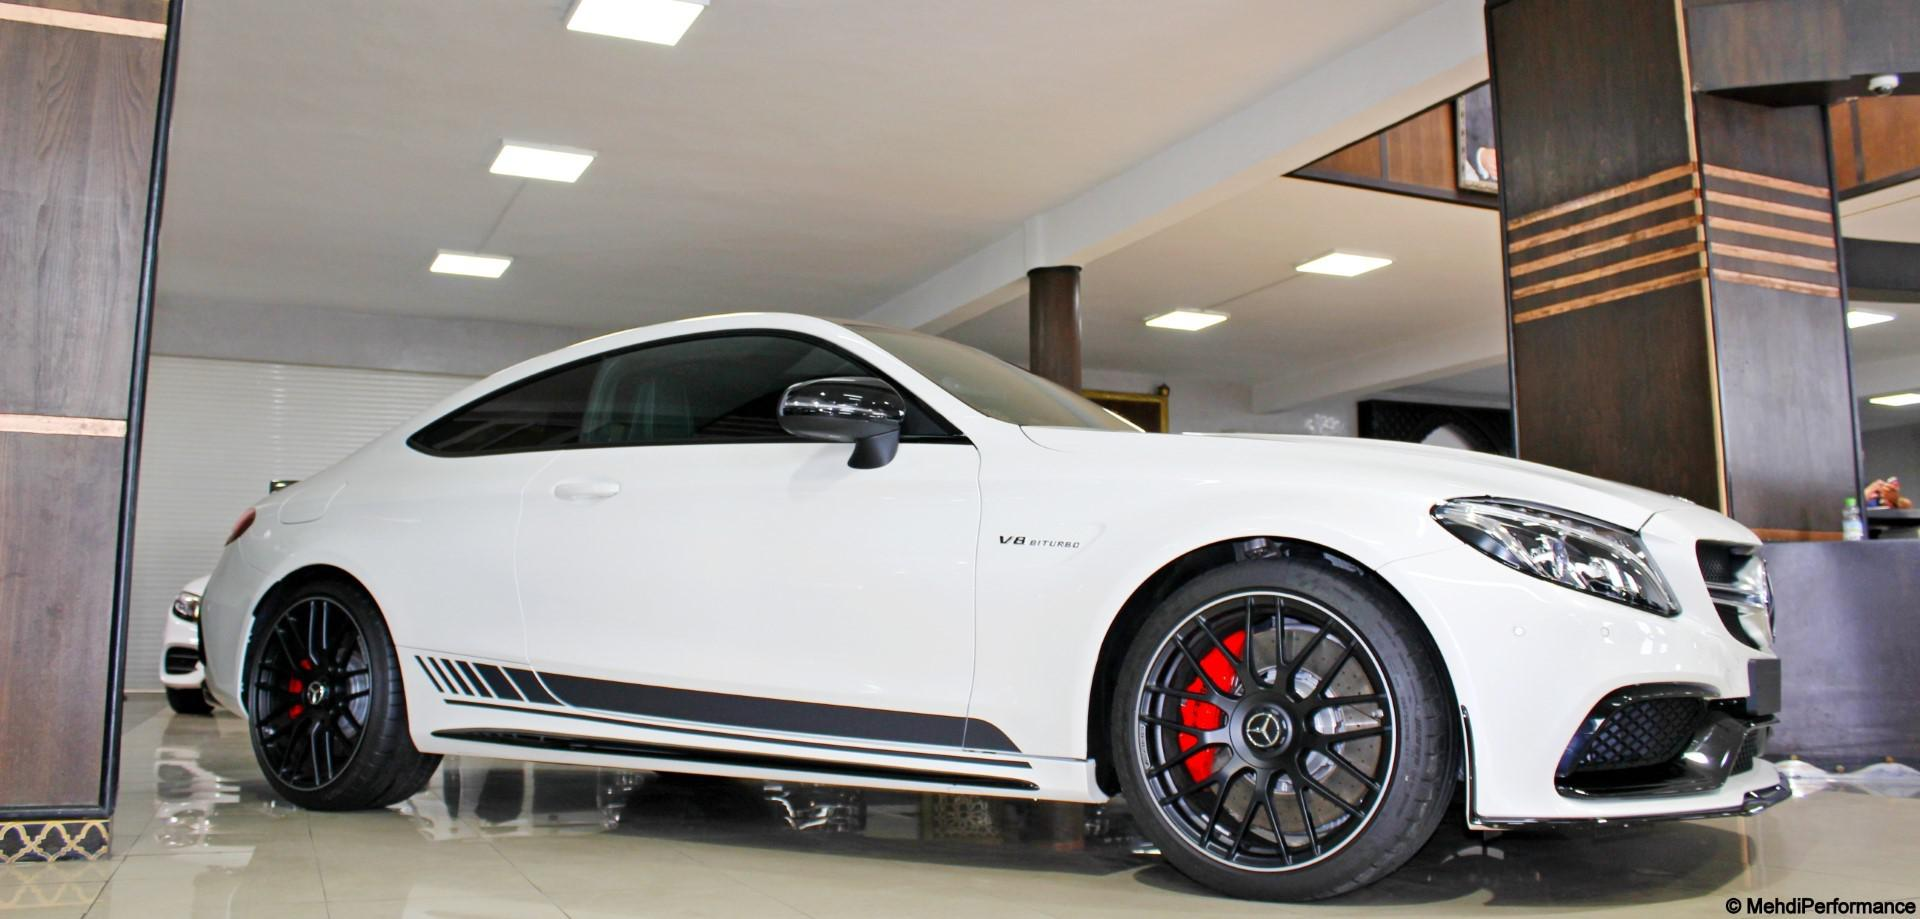 mercedes-amg-c-coupe-63-s-serie-edition-1-332-1.jpg